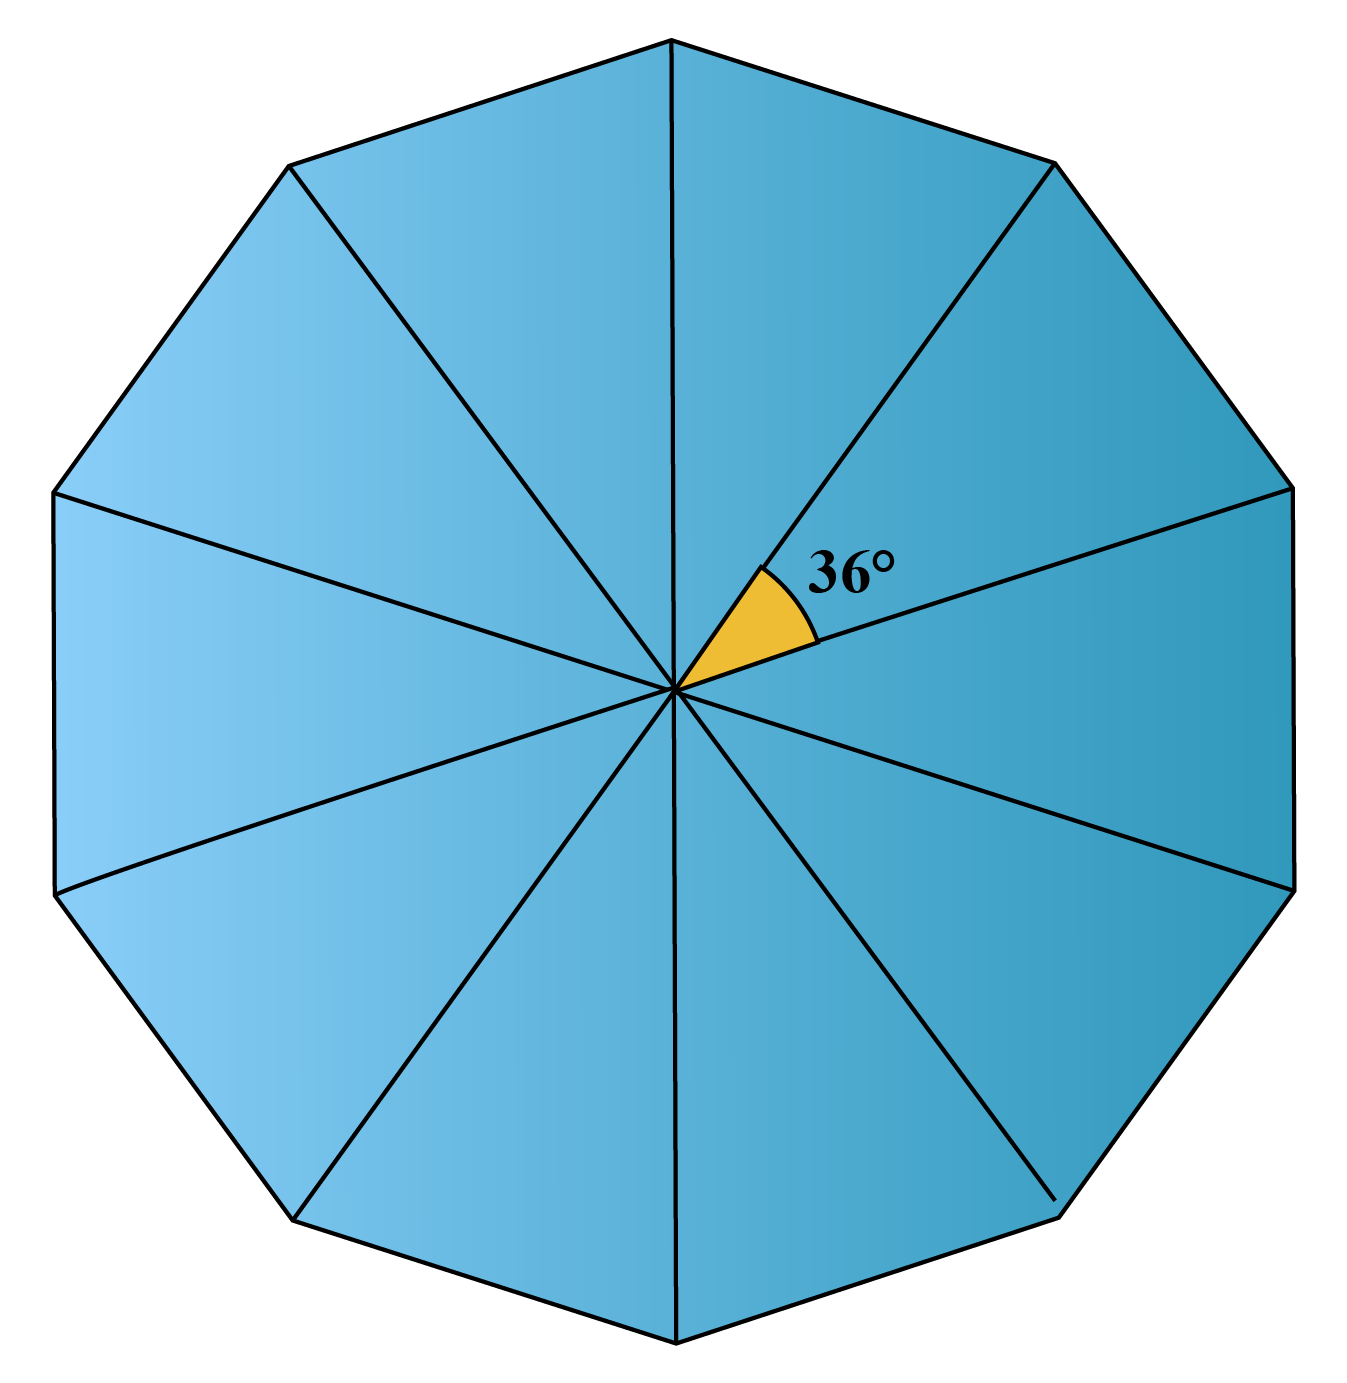 decagon - central angle is 36 degree